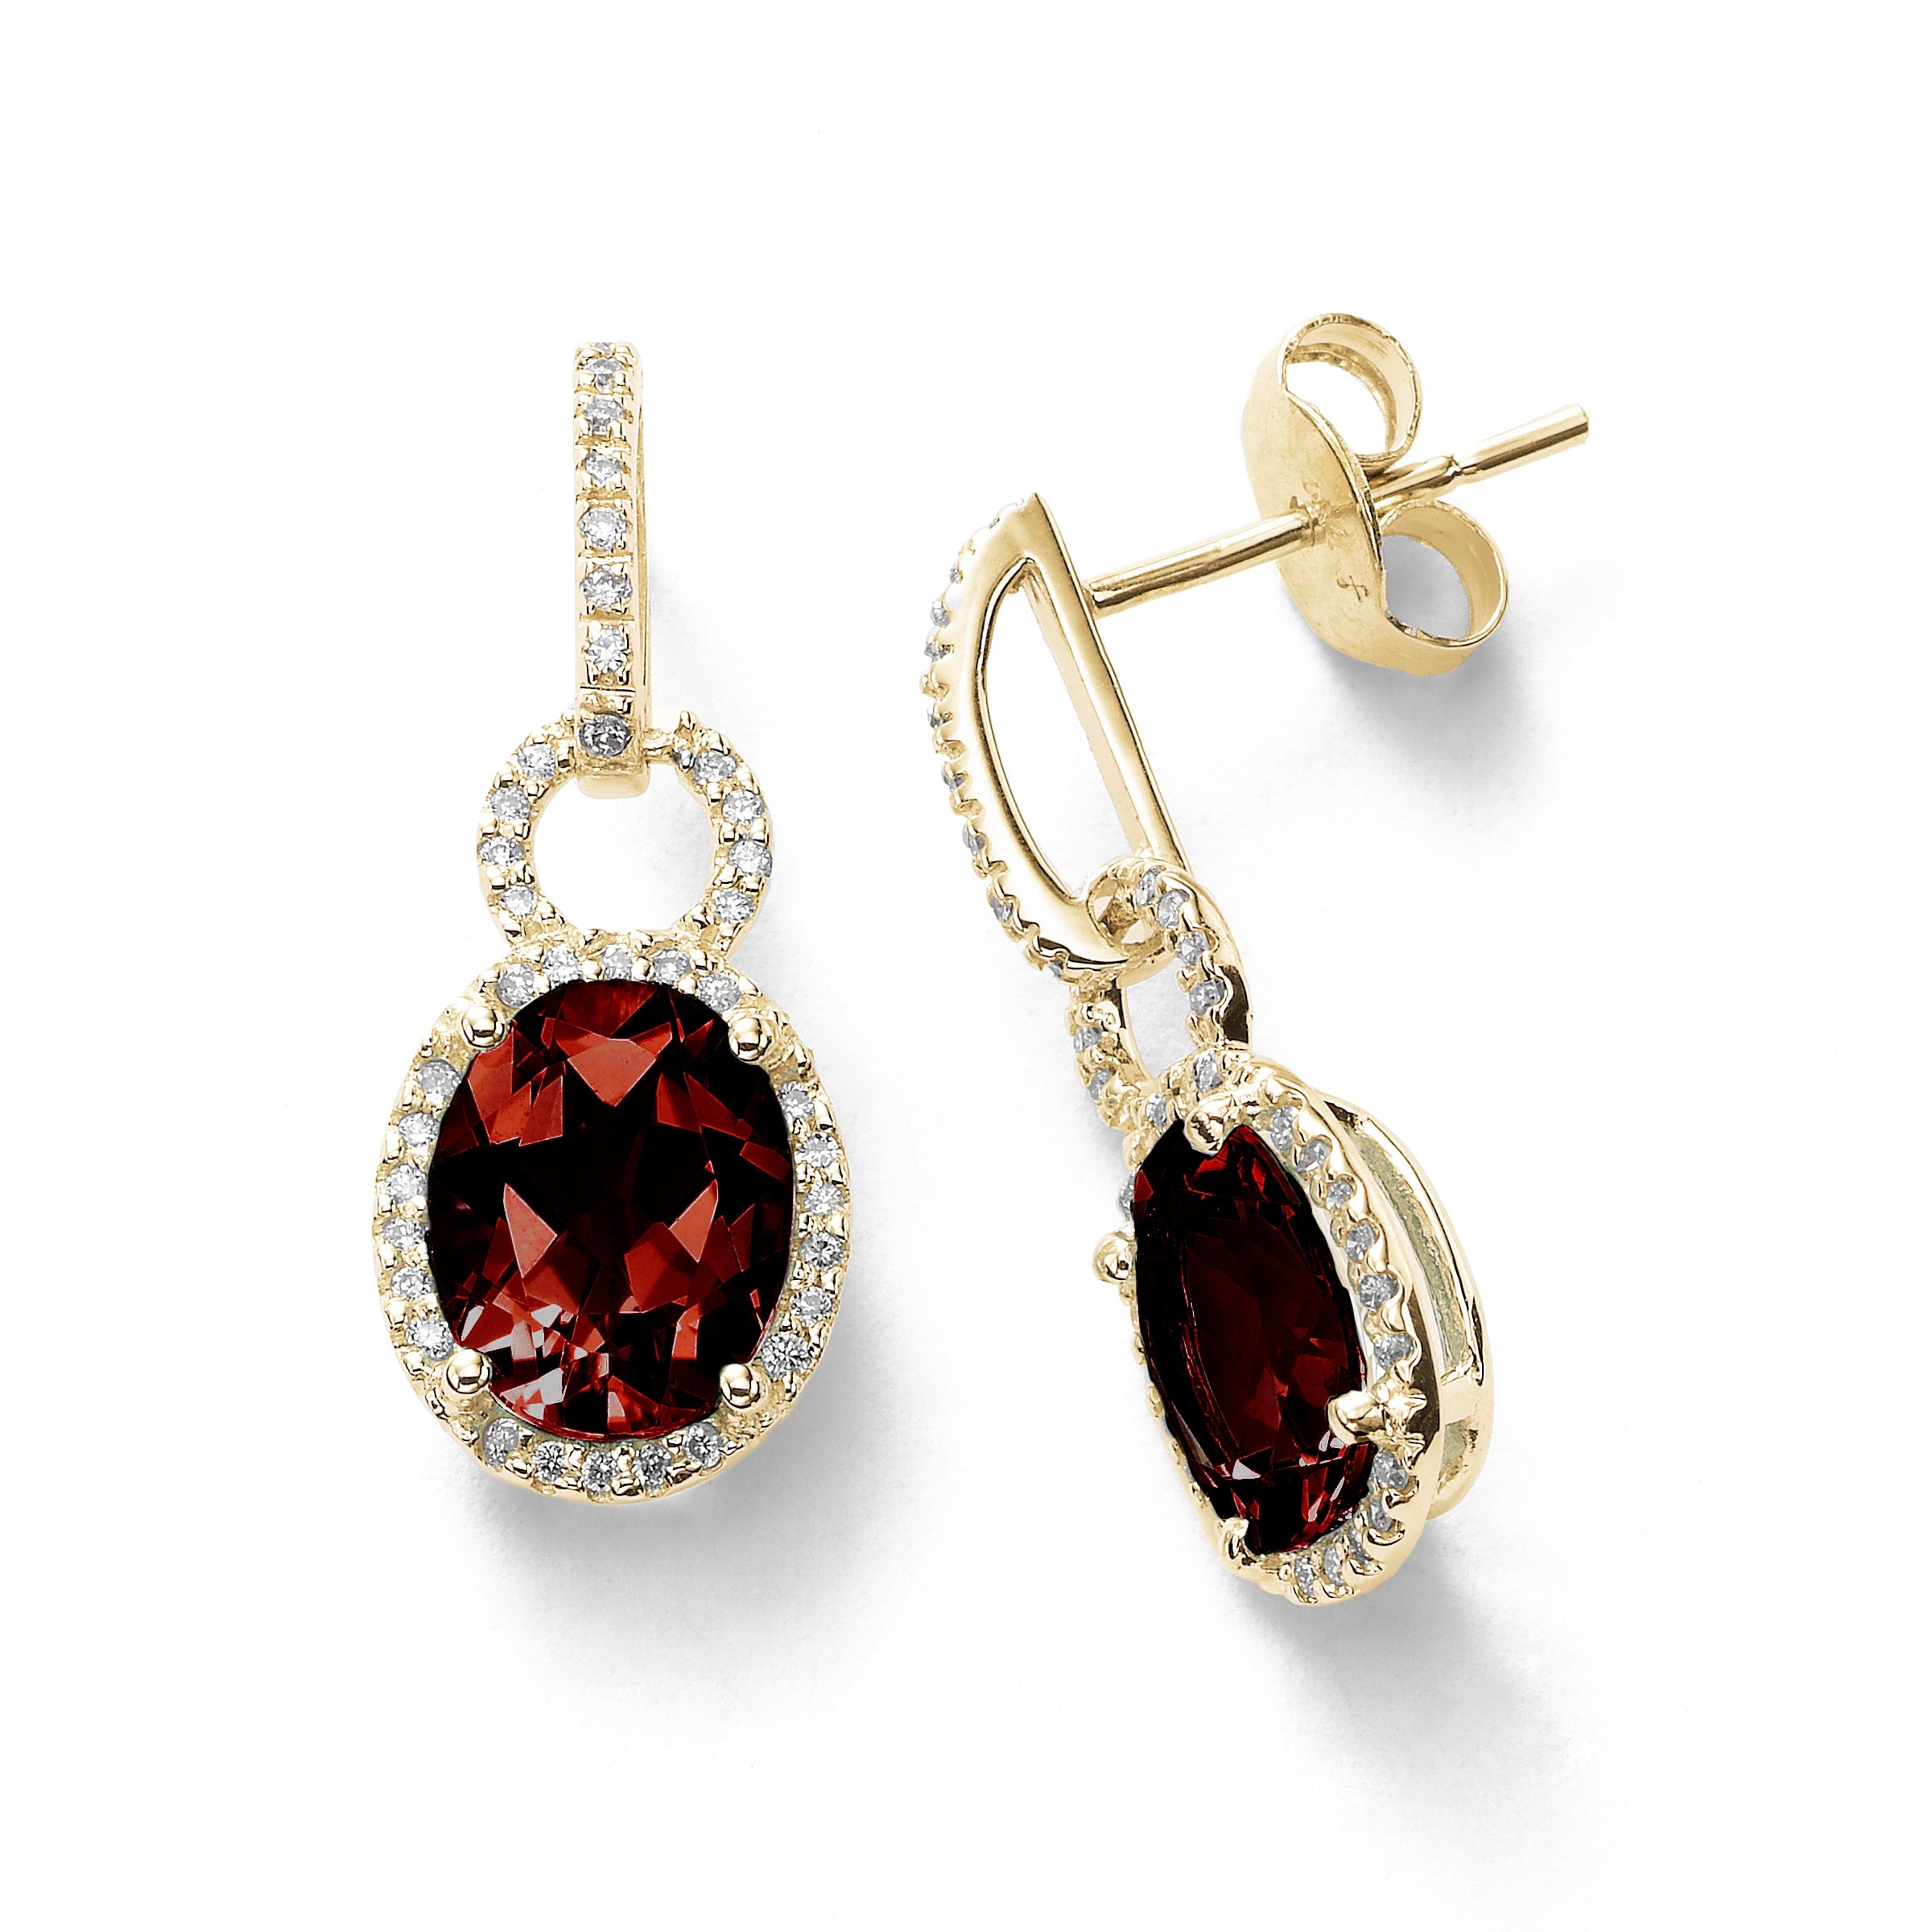 Oval Garnet and Diamond Dangle Earrings, 14K Yellow Gold